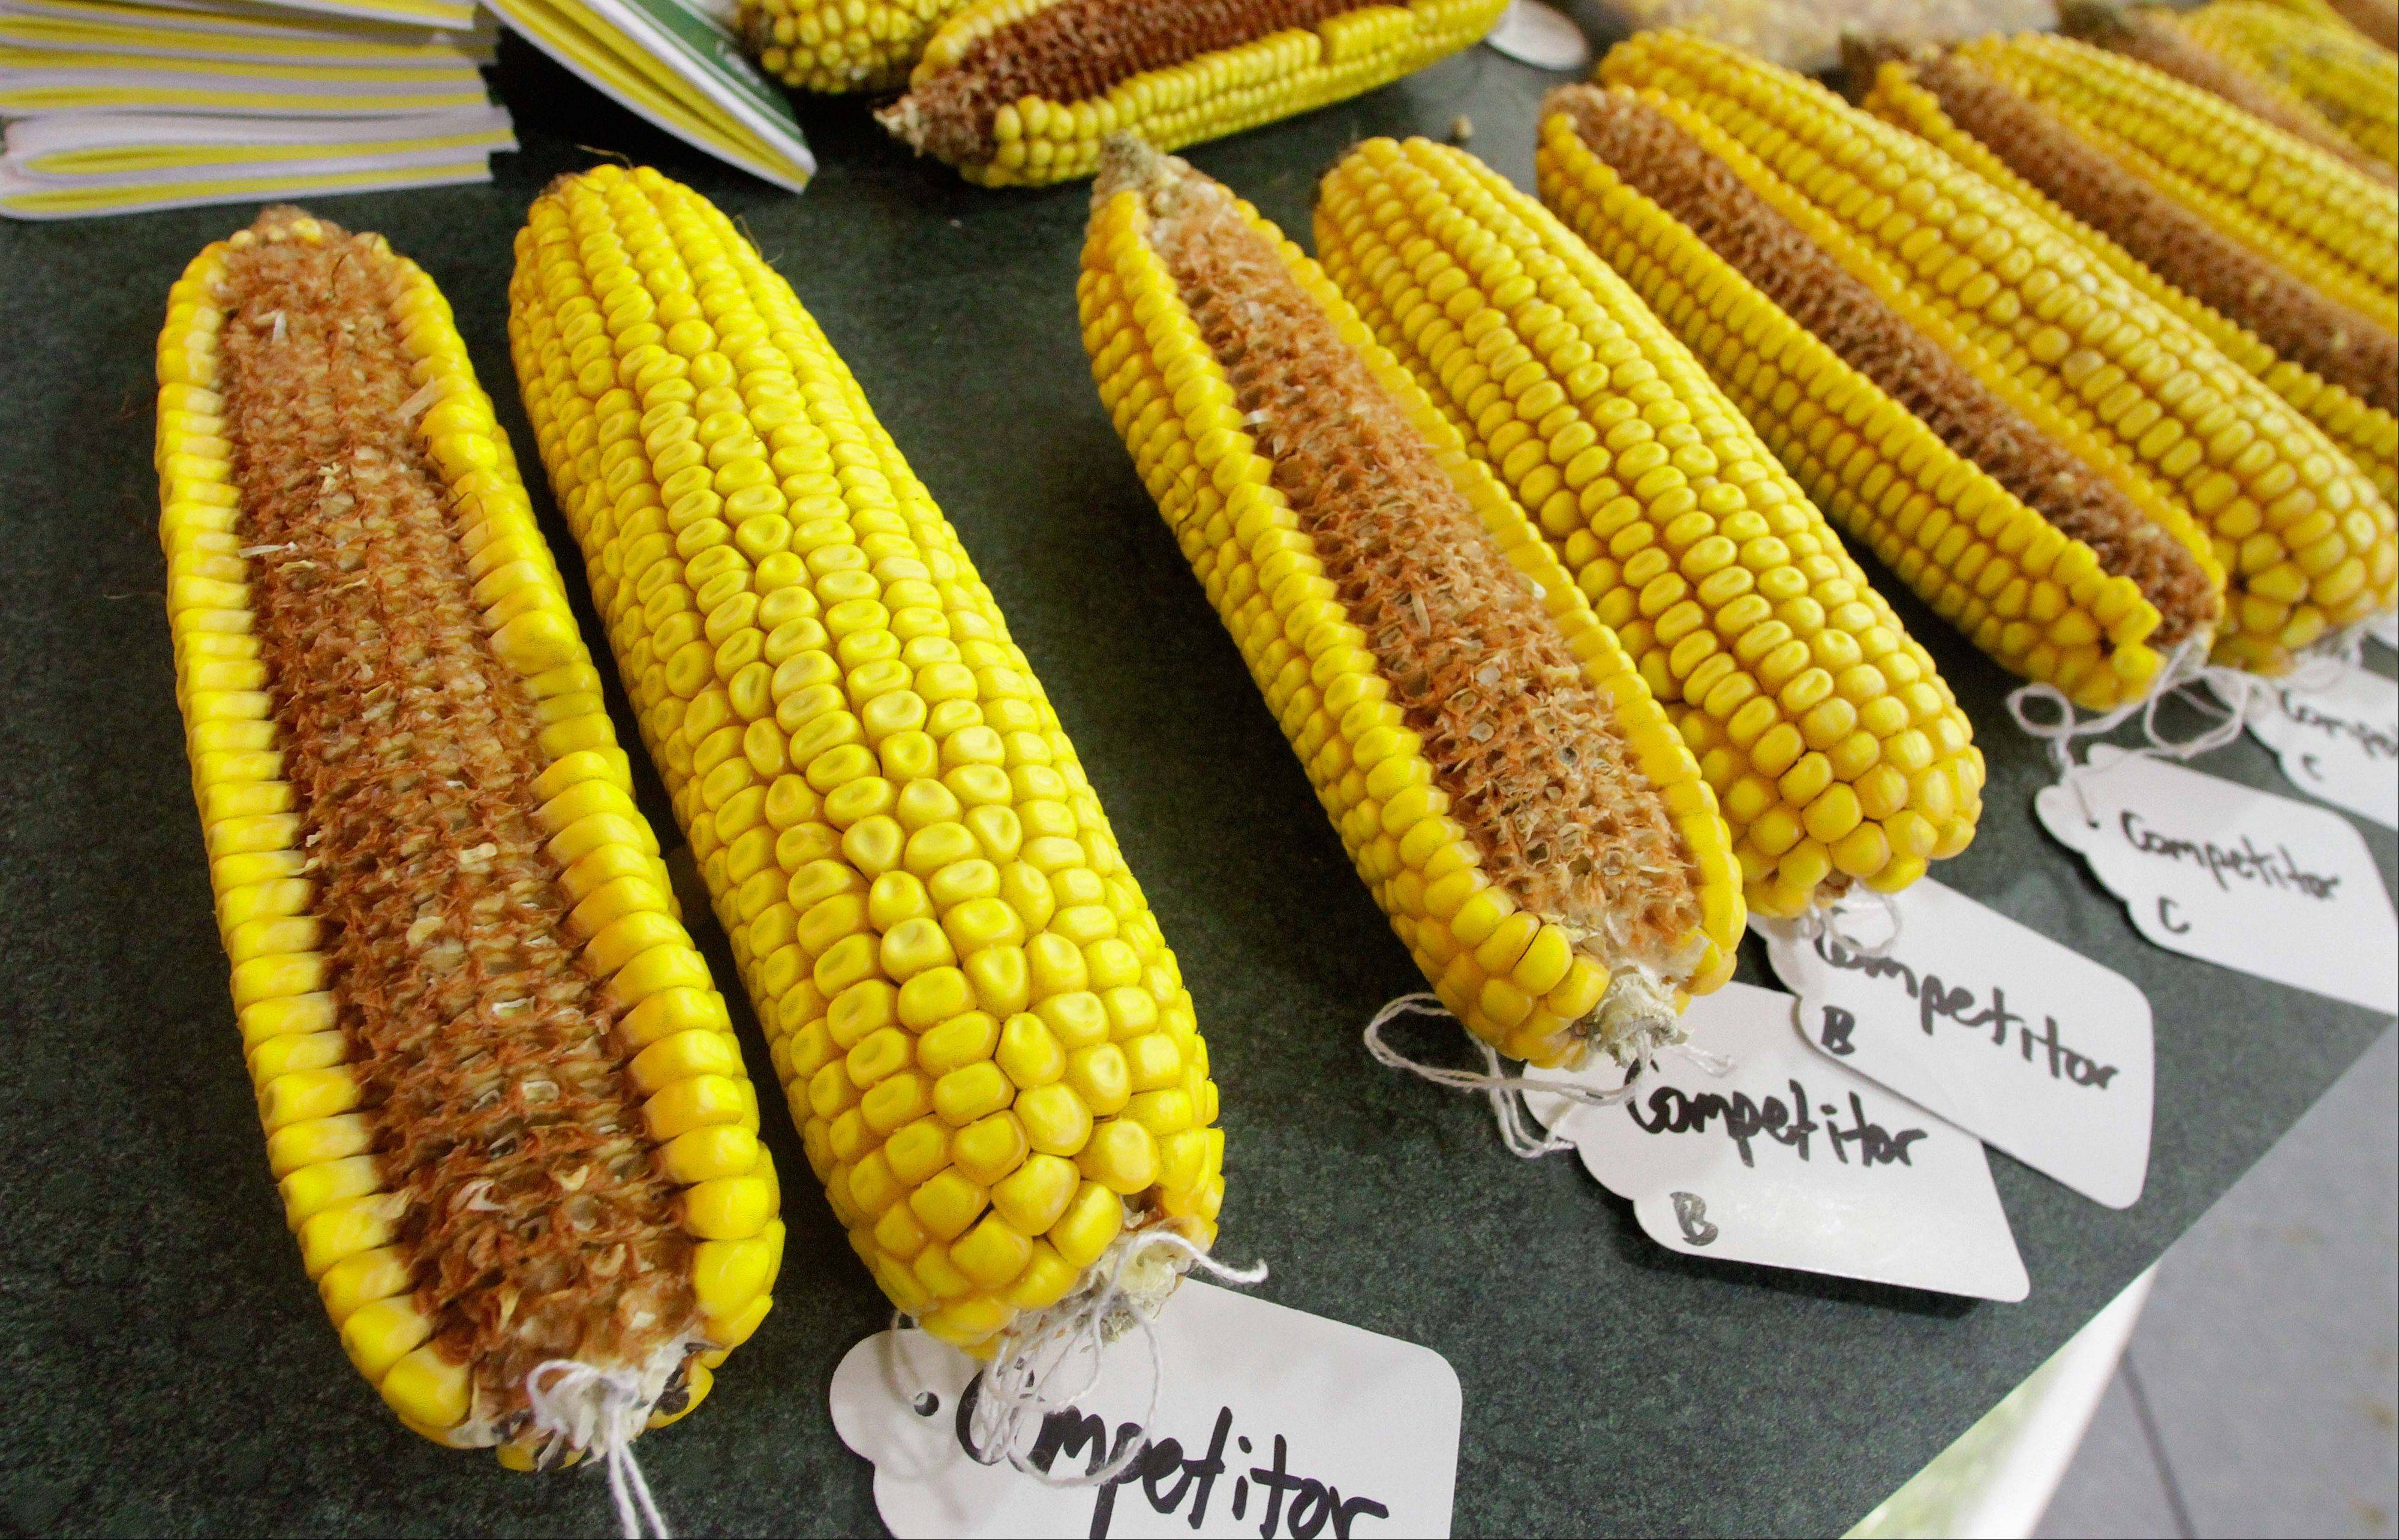 Corn from various seed companies is displayed in a Pioneer seed exhibit booth during the Farm Progress Show in Decatur. Tens of thousands of farmers from the Midwest and beyond are gathered for the agricultural trade this year.